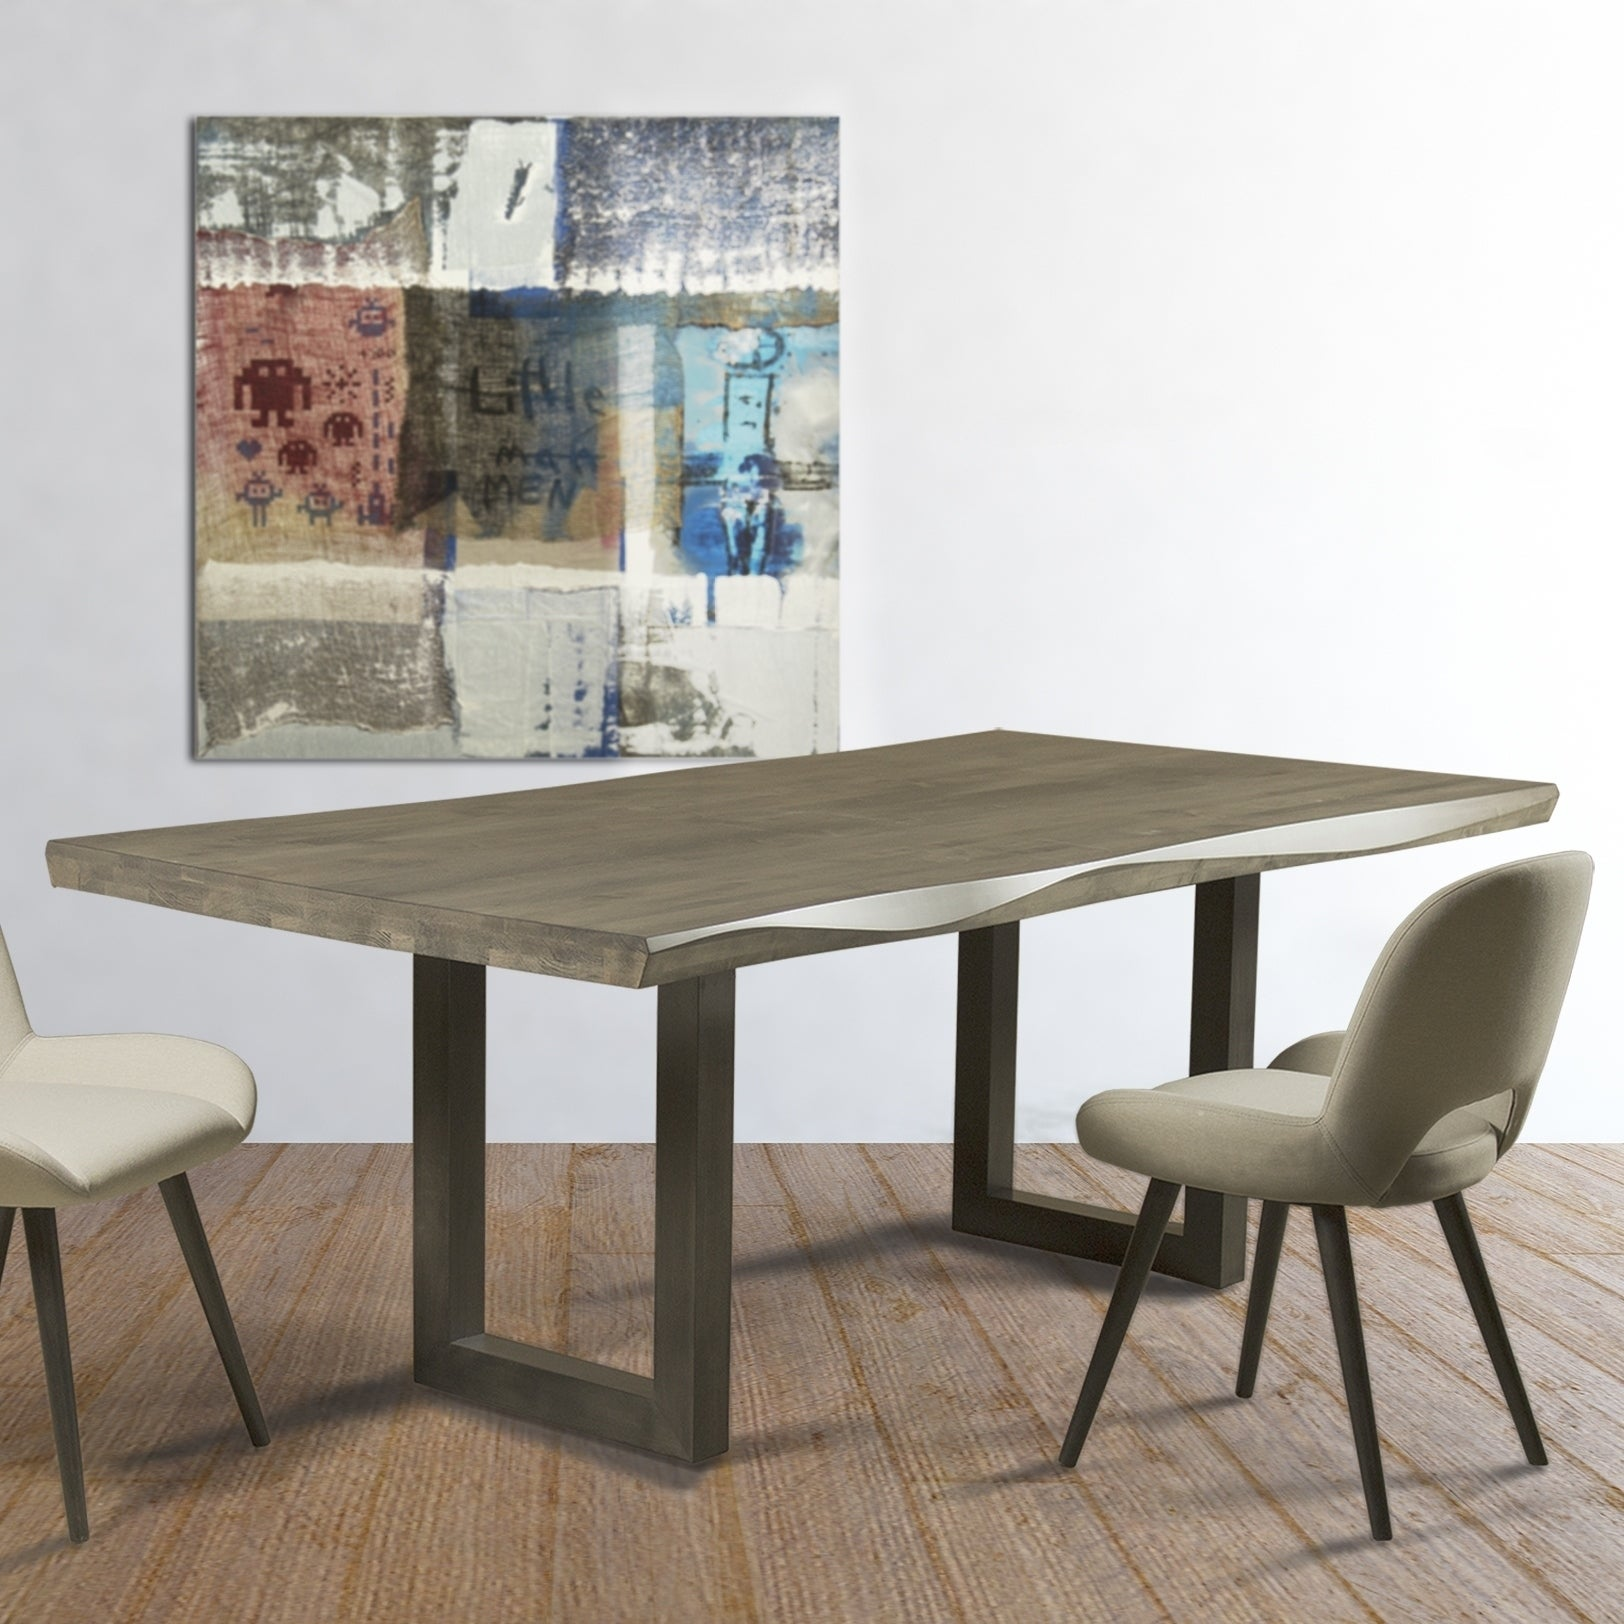 Shop saloom emerson nantucket maple 42x80 inch rectangular sculpted edge dining table nantucket base free shipping today overstock com 17520650